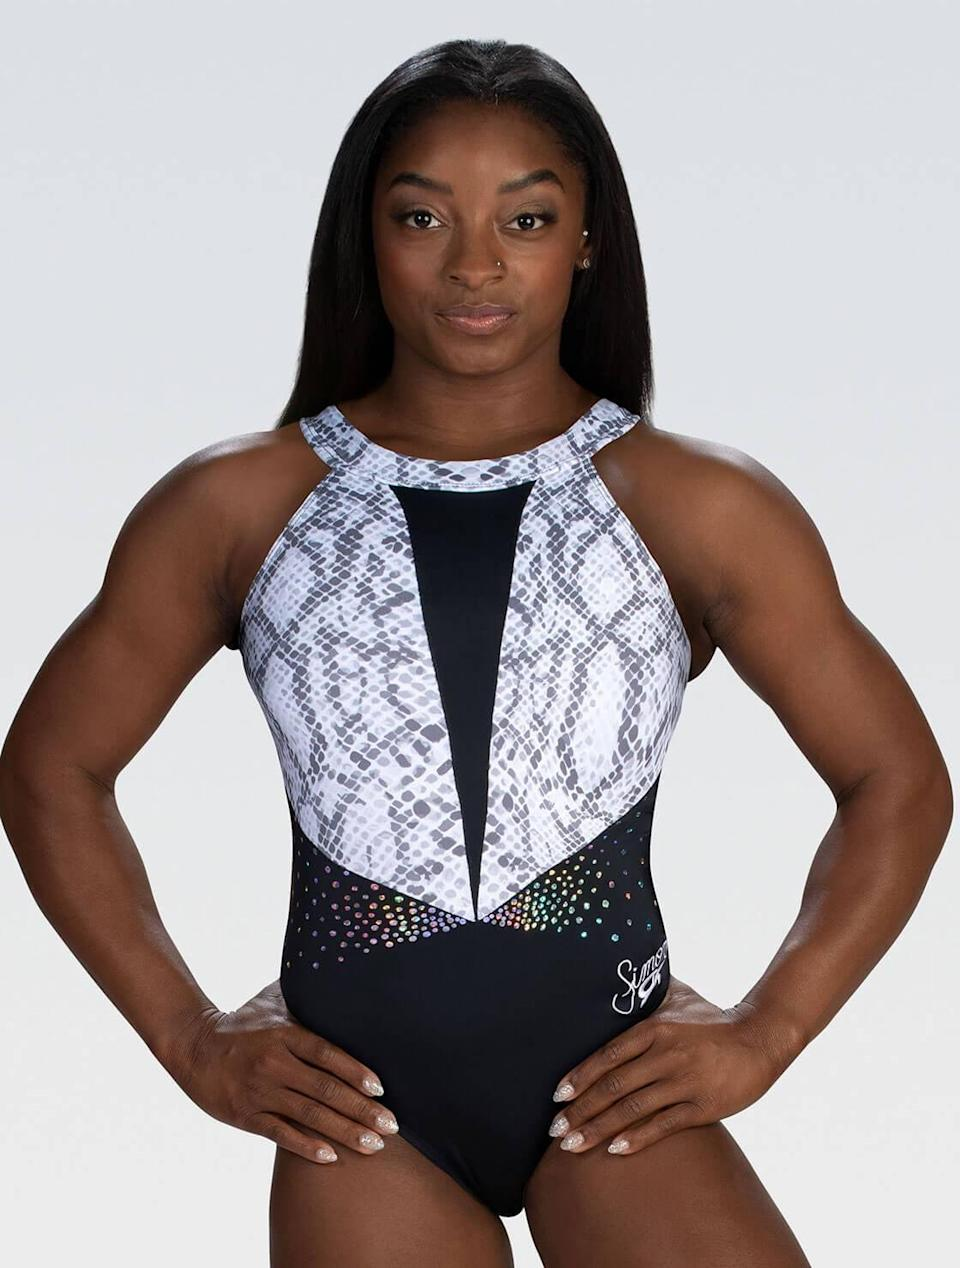 <p>Check out another <span>GK Elite Championships Replica Workout Leotard</span> ($80) inspired by Biles's goat leotard on night two of Championships.</p>